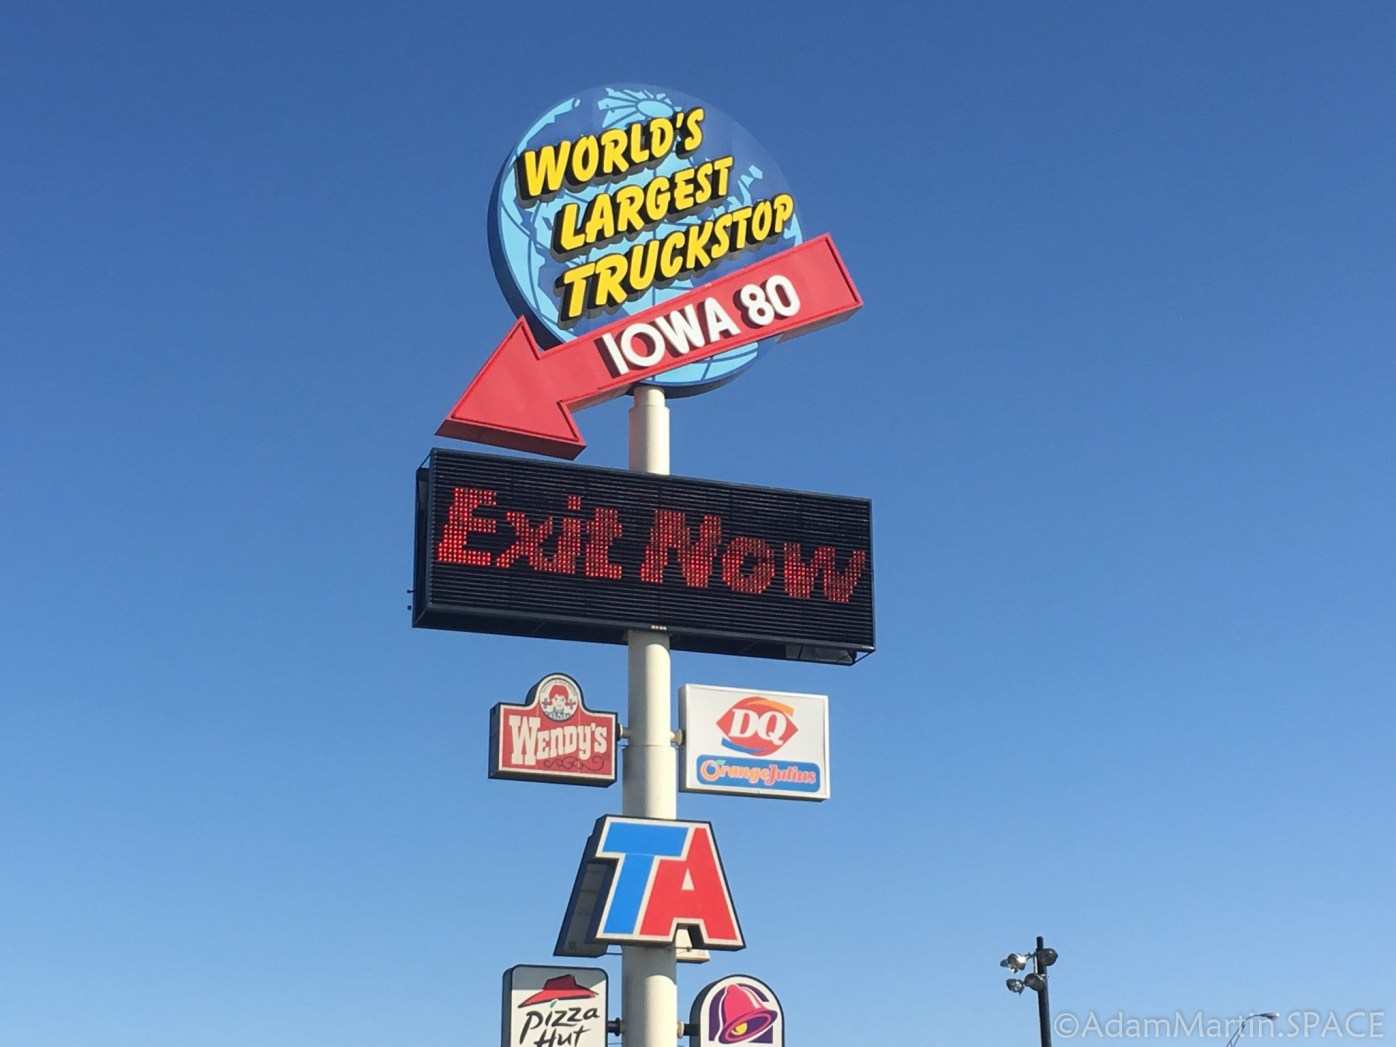 Iowa 80 - Worlds Largest Truckstop